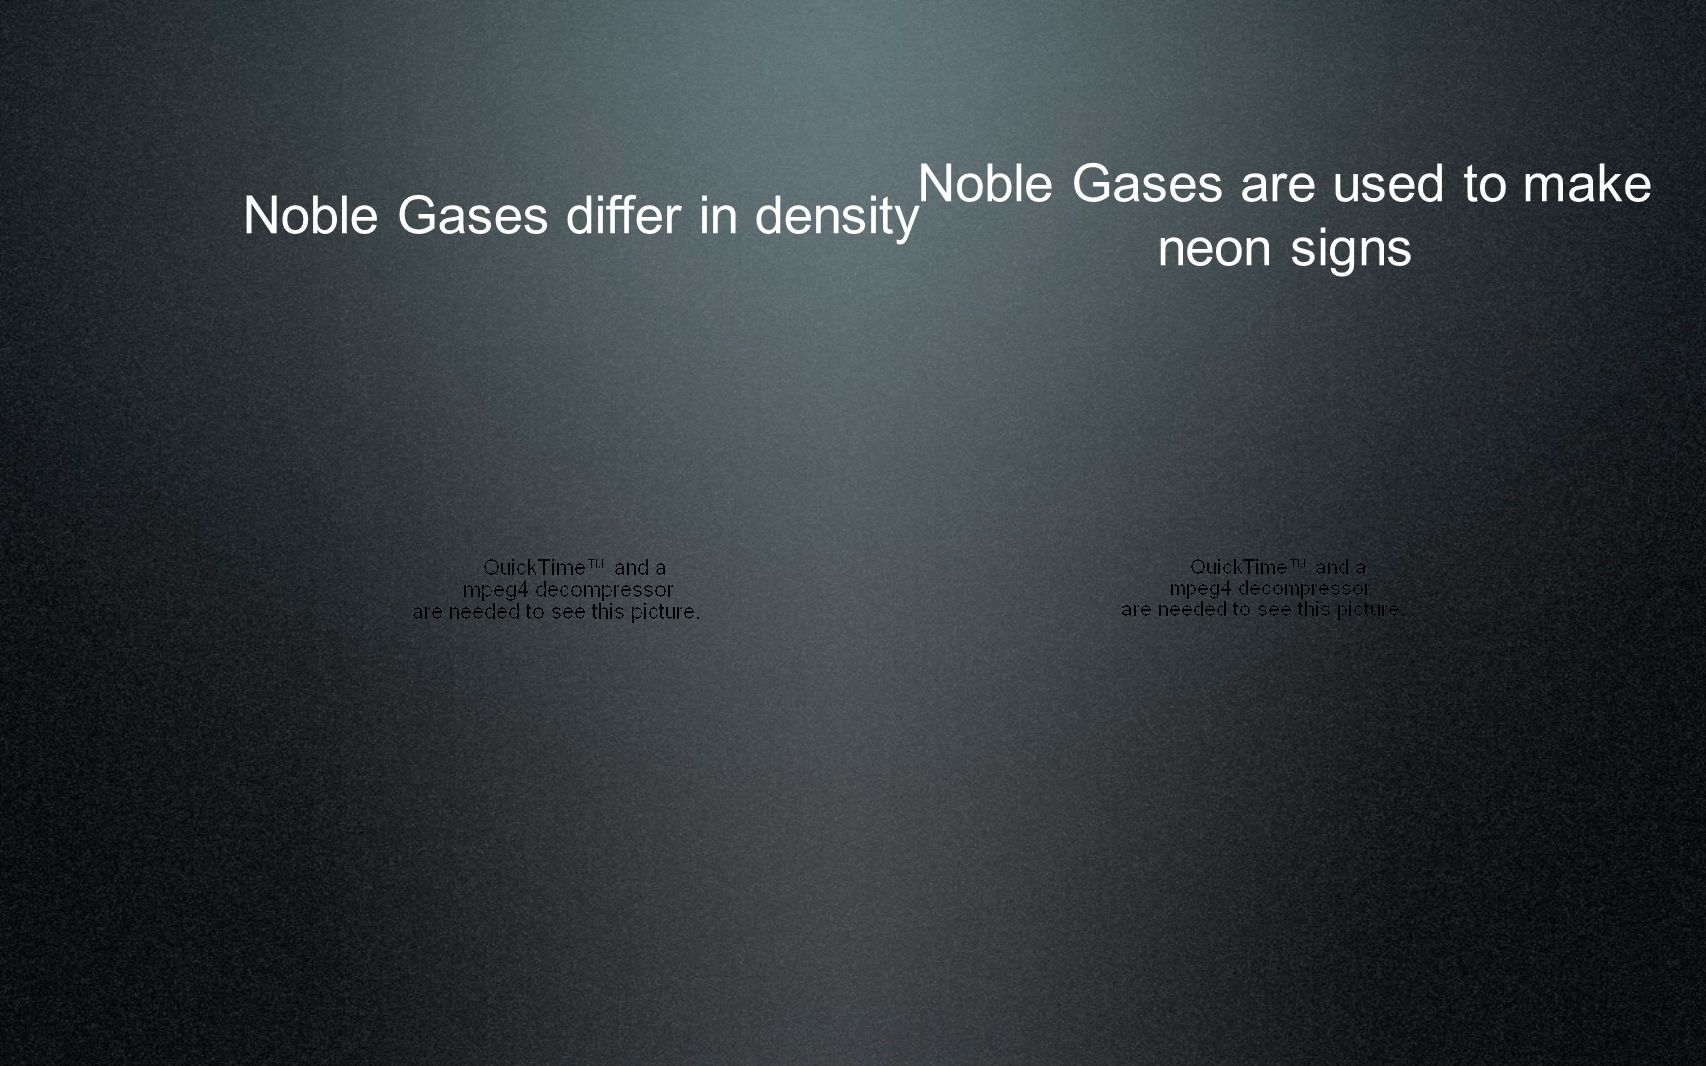 Noble Gases differ in density Noble Gases are used to make neon signs